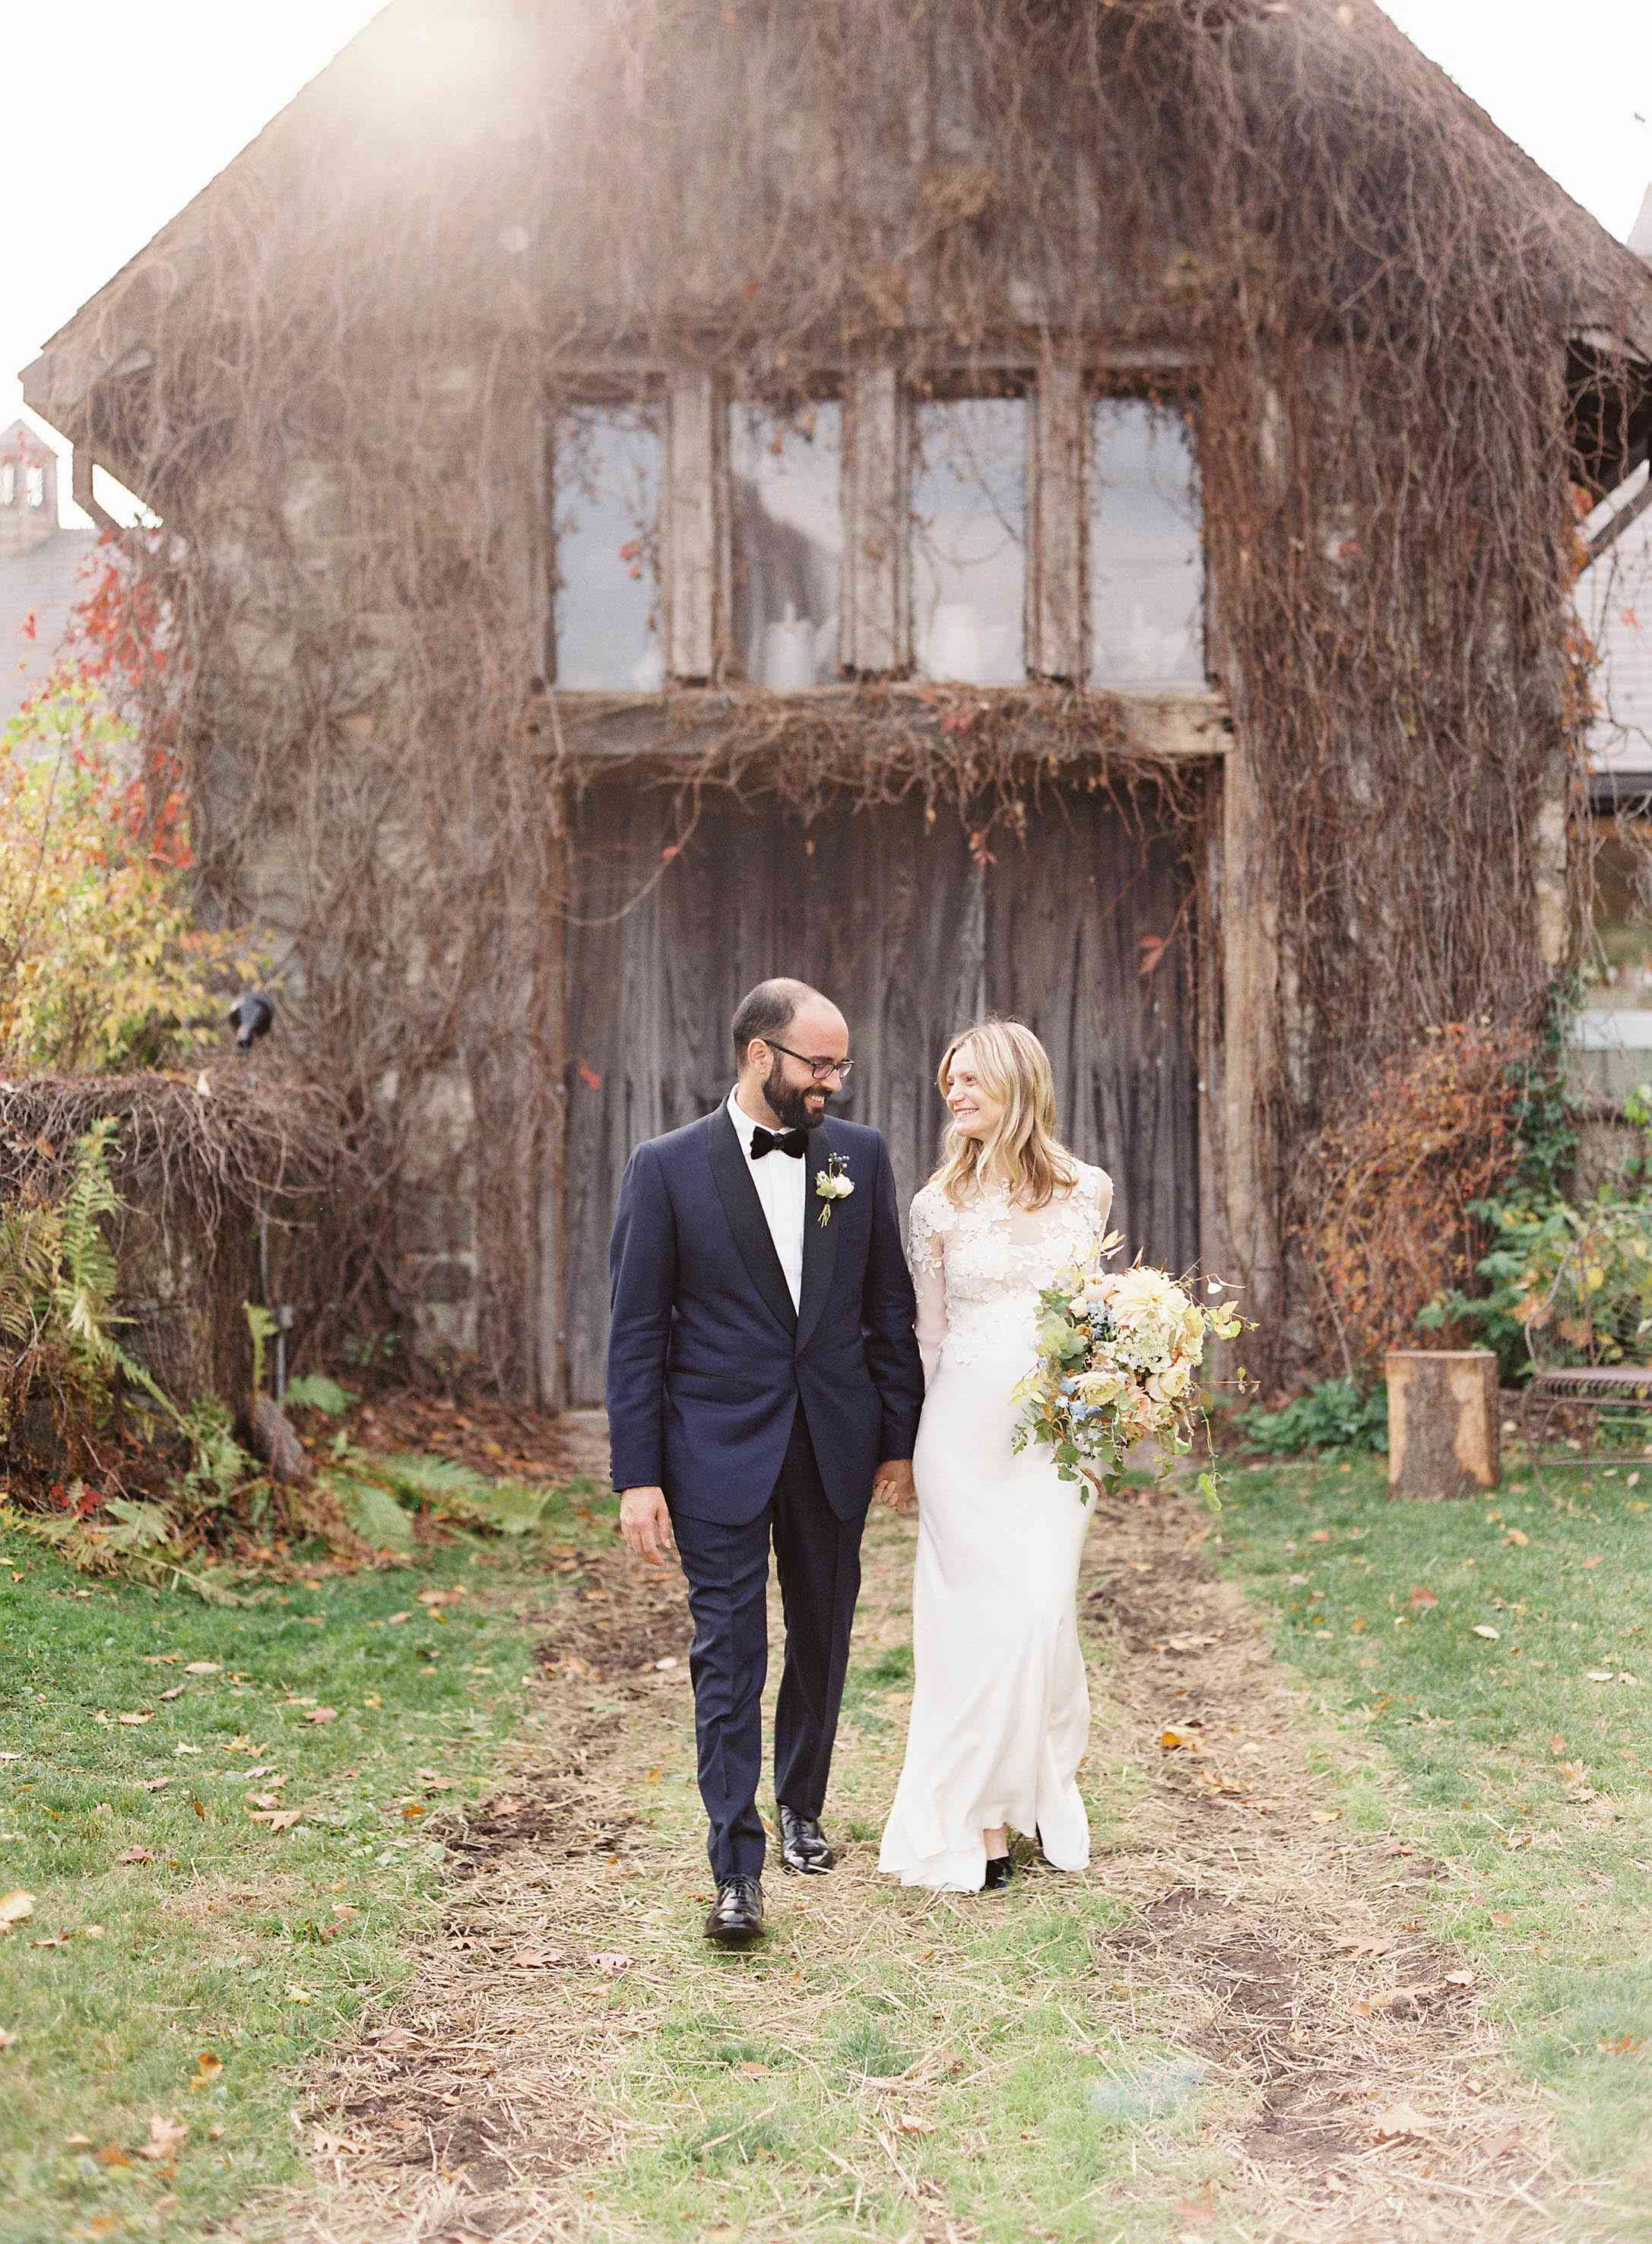 <p>Bride and groom outside barn</p>